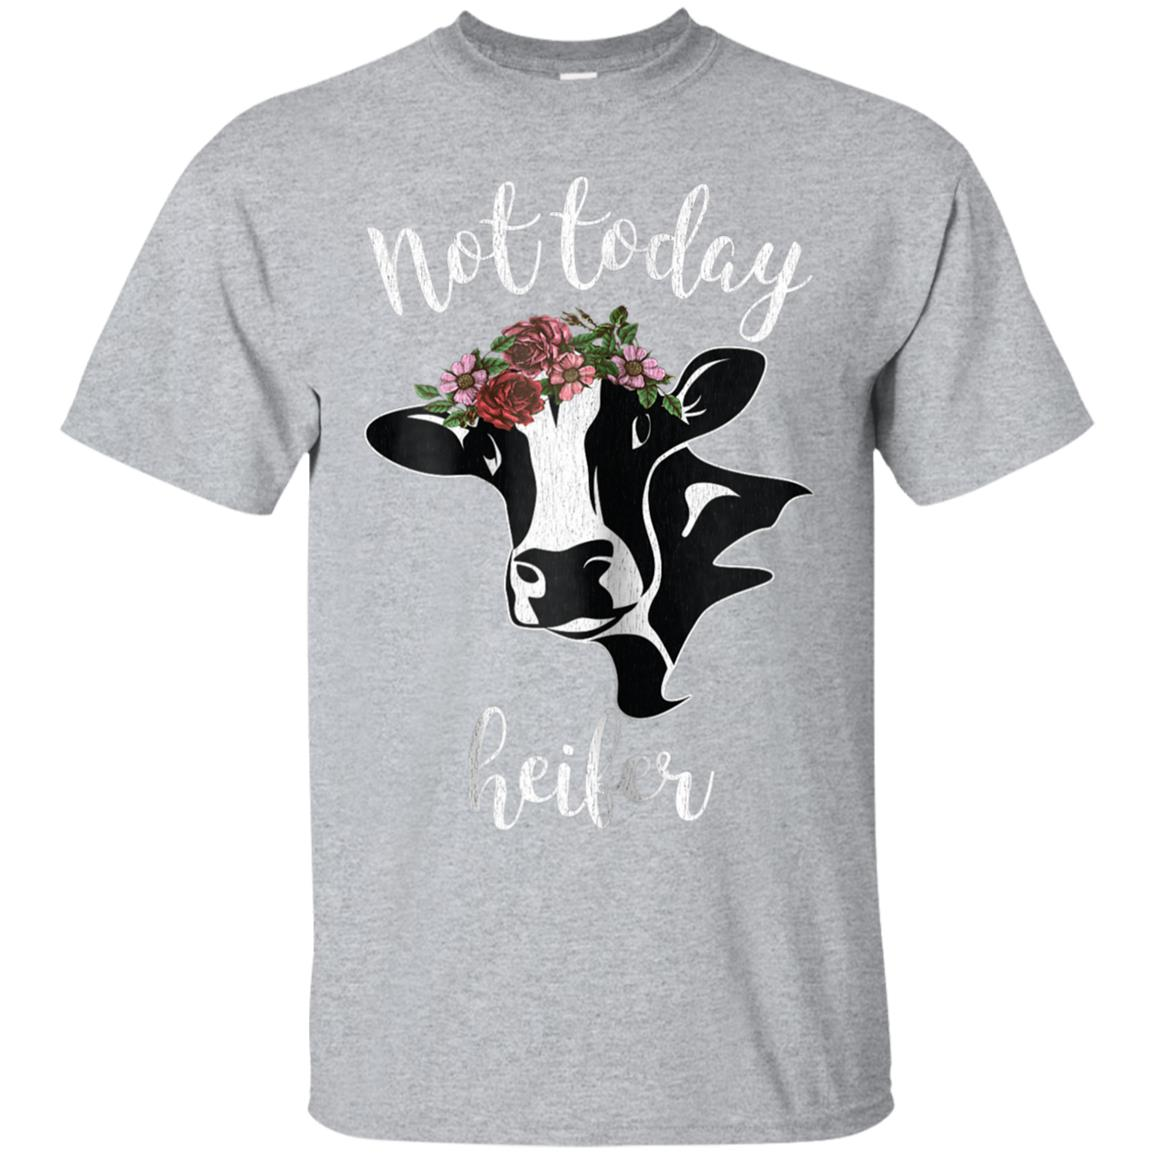 Awesome womens not today heifer t shirt vintage funny cow shirt women -  99promocode 14a92de9779f